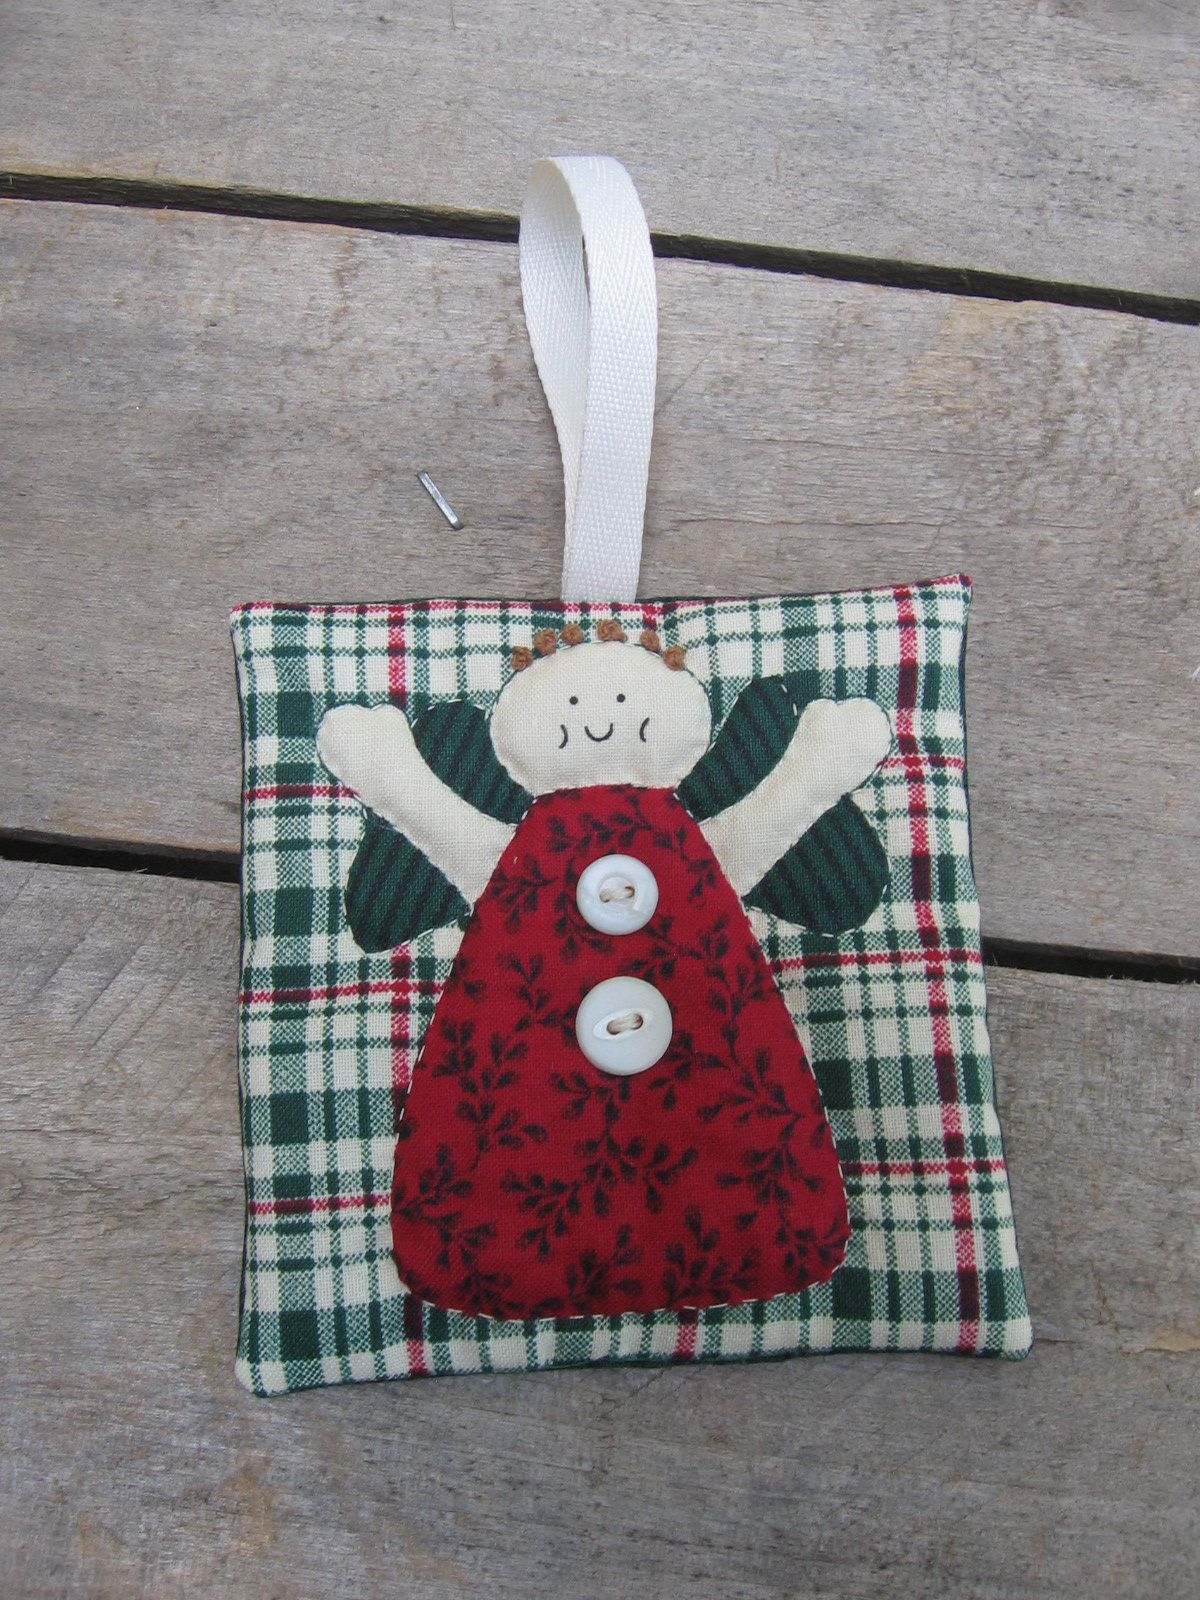 Hand Quilted Angel Christmas Ornament Fabric Angel Ornament Etsy Fabric Ornaments Christmas Angels Hand Quilting